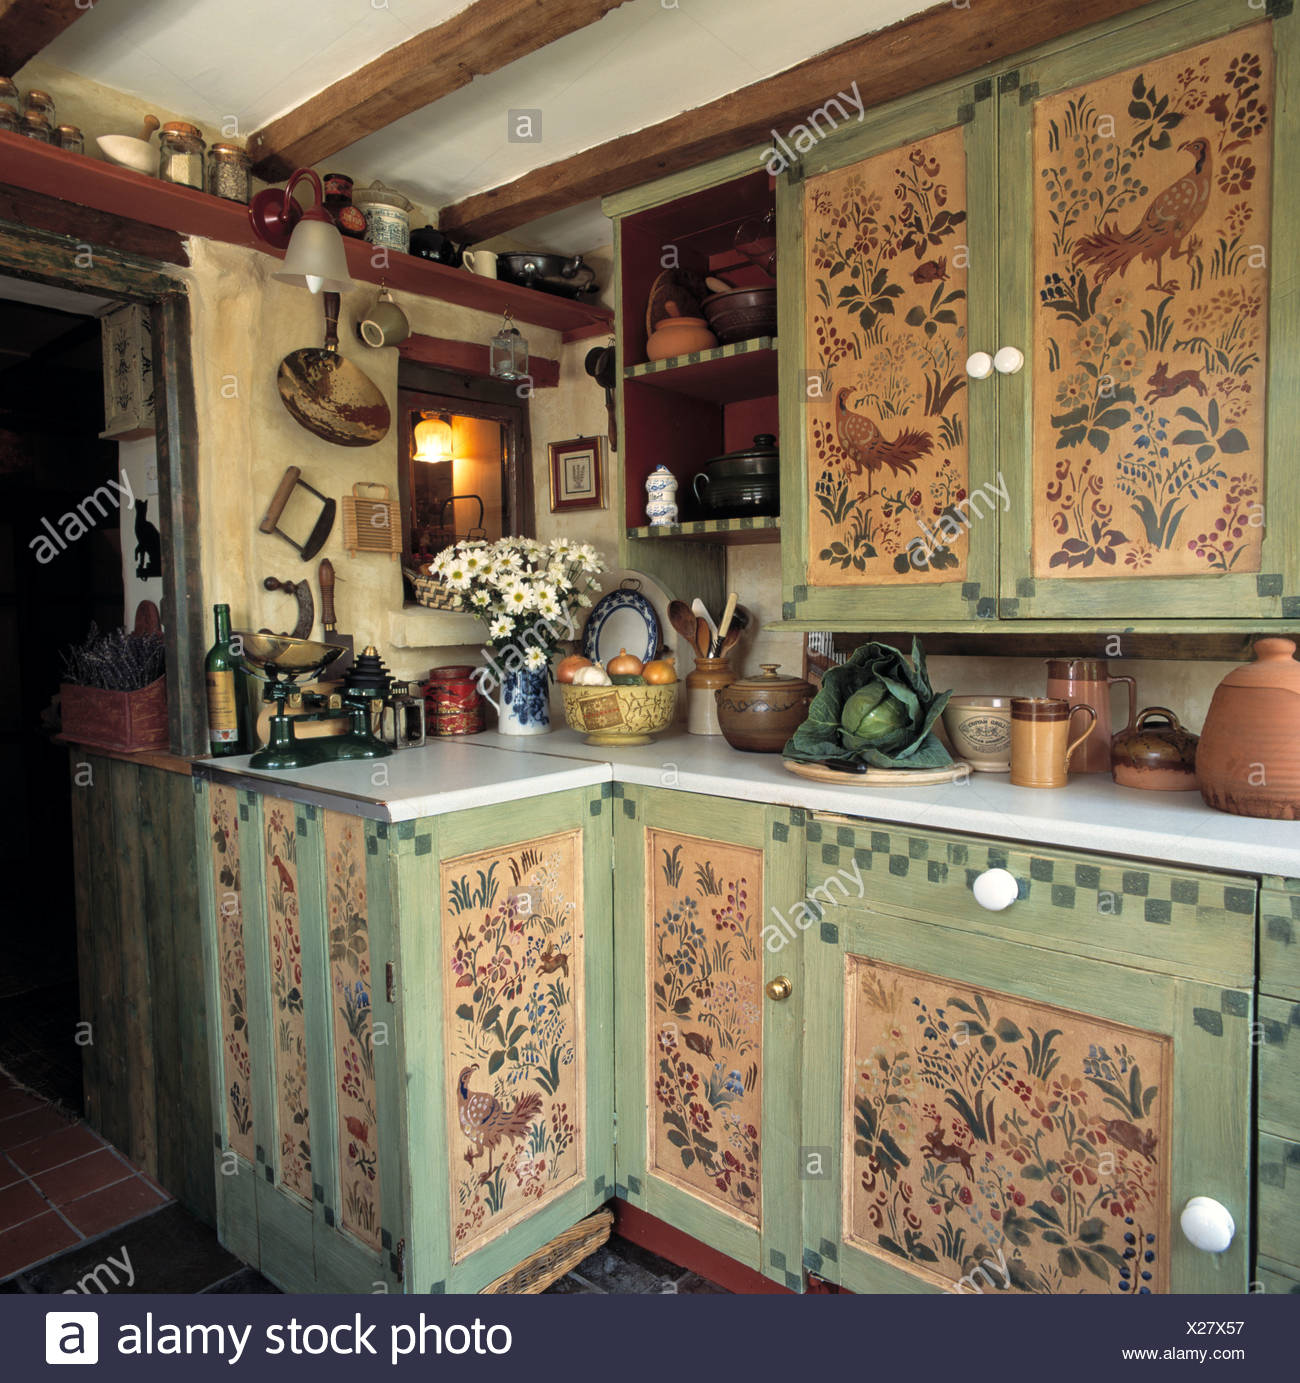 Handpainted Flowers And Birds On Cupboard Doors Of Small Cottage